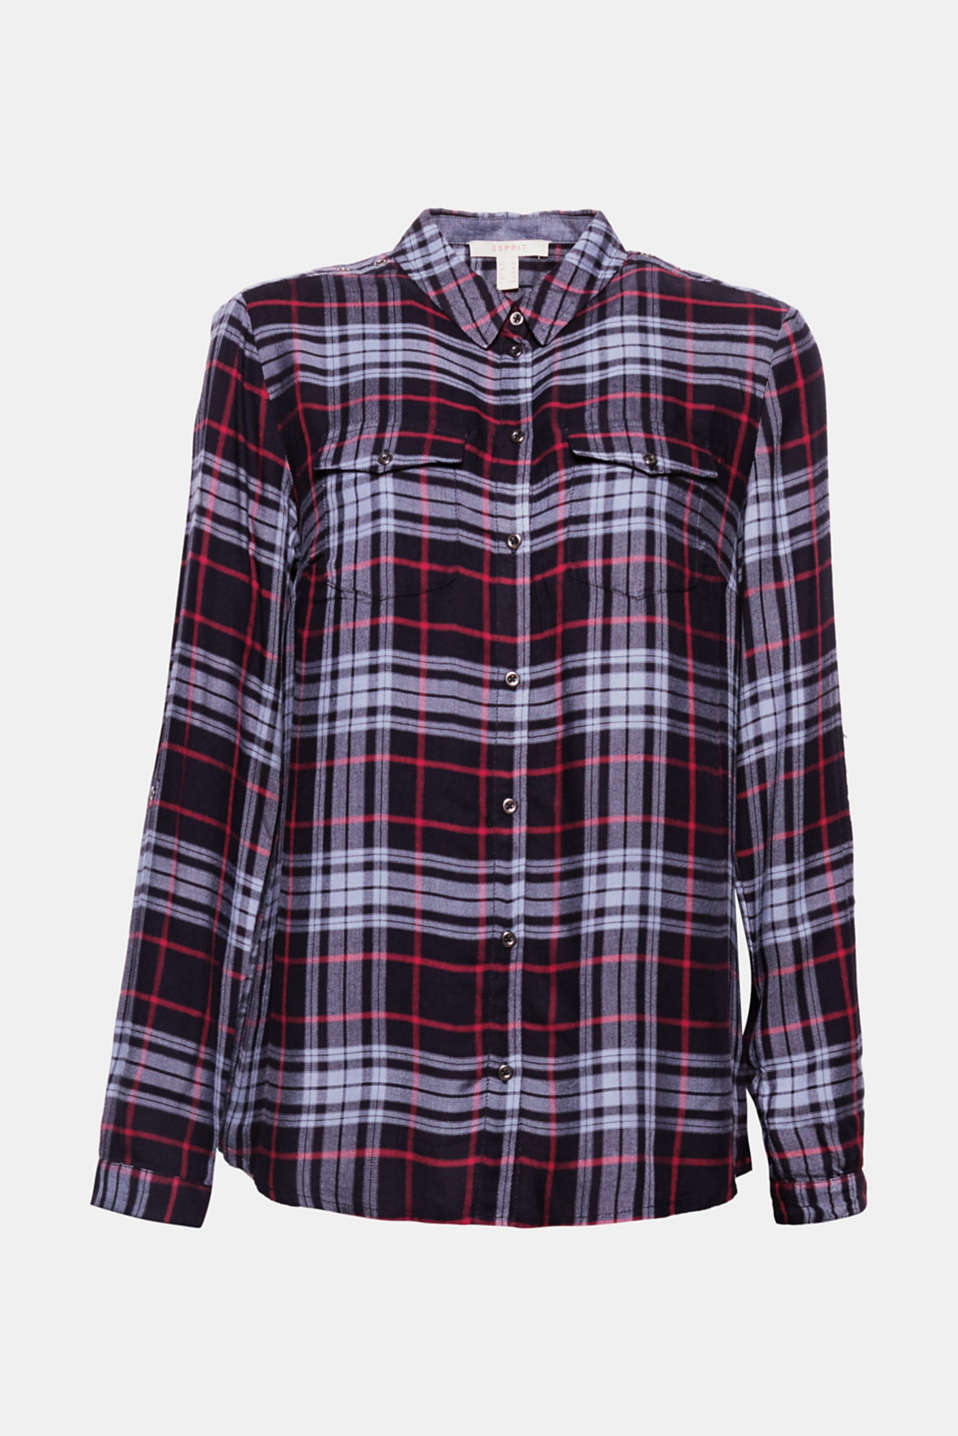 A real highlight piece to wear with jeans or cloth trousers, this loosely draped checked blouse features cool studs, turn-up sleeves and a laid-back silhouette.